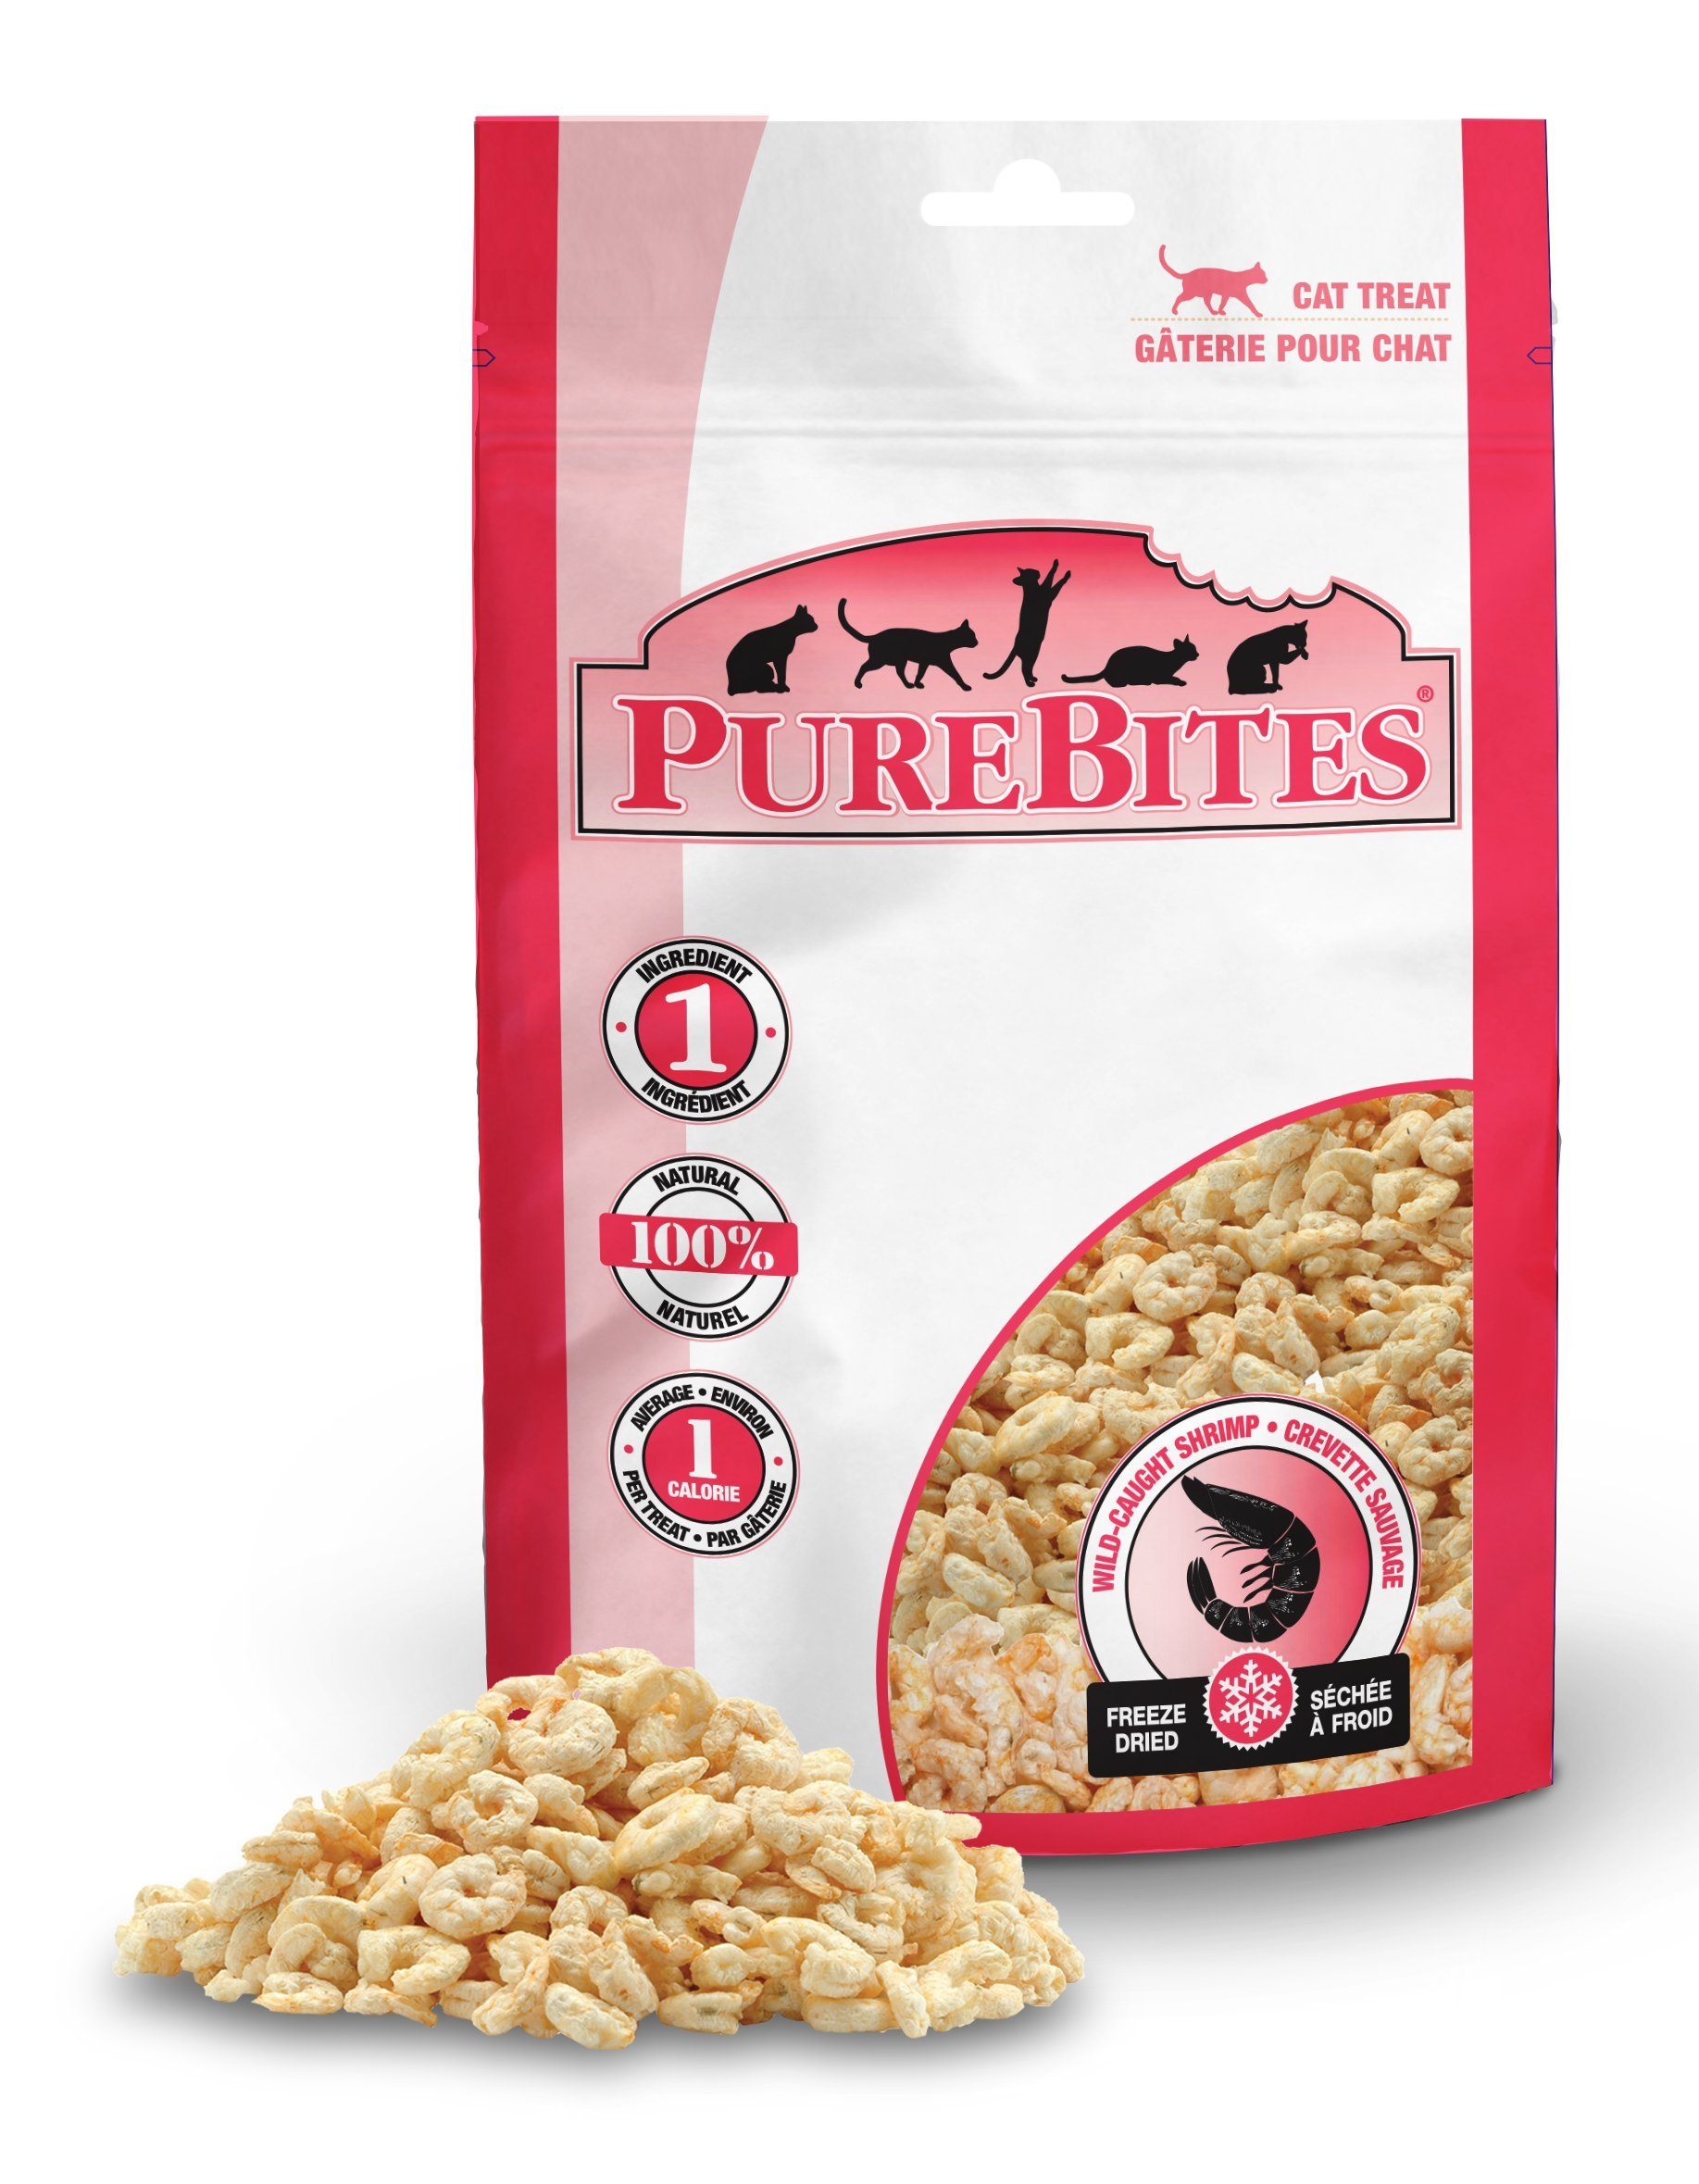 Purebites Shrimp For Cats, 0.28Z / 8G - Entry Size, 14 Pack by PureBites